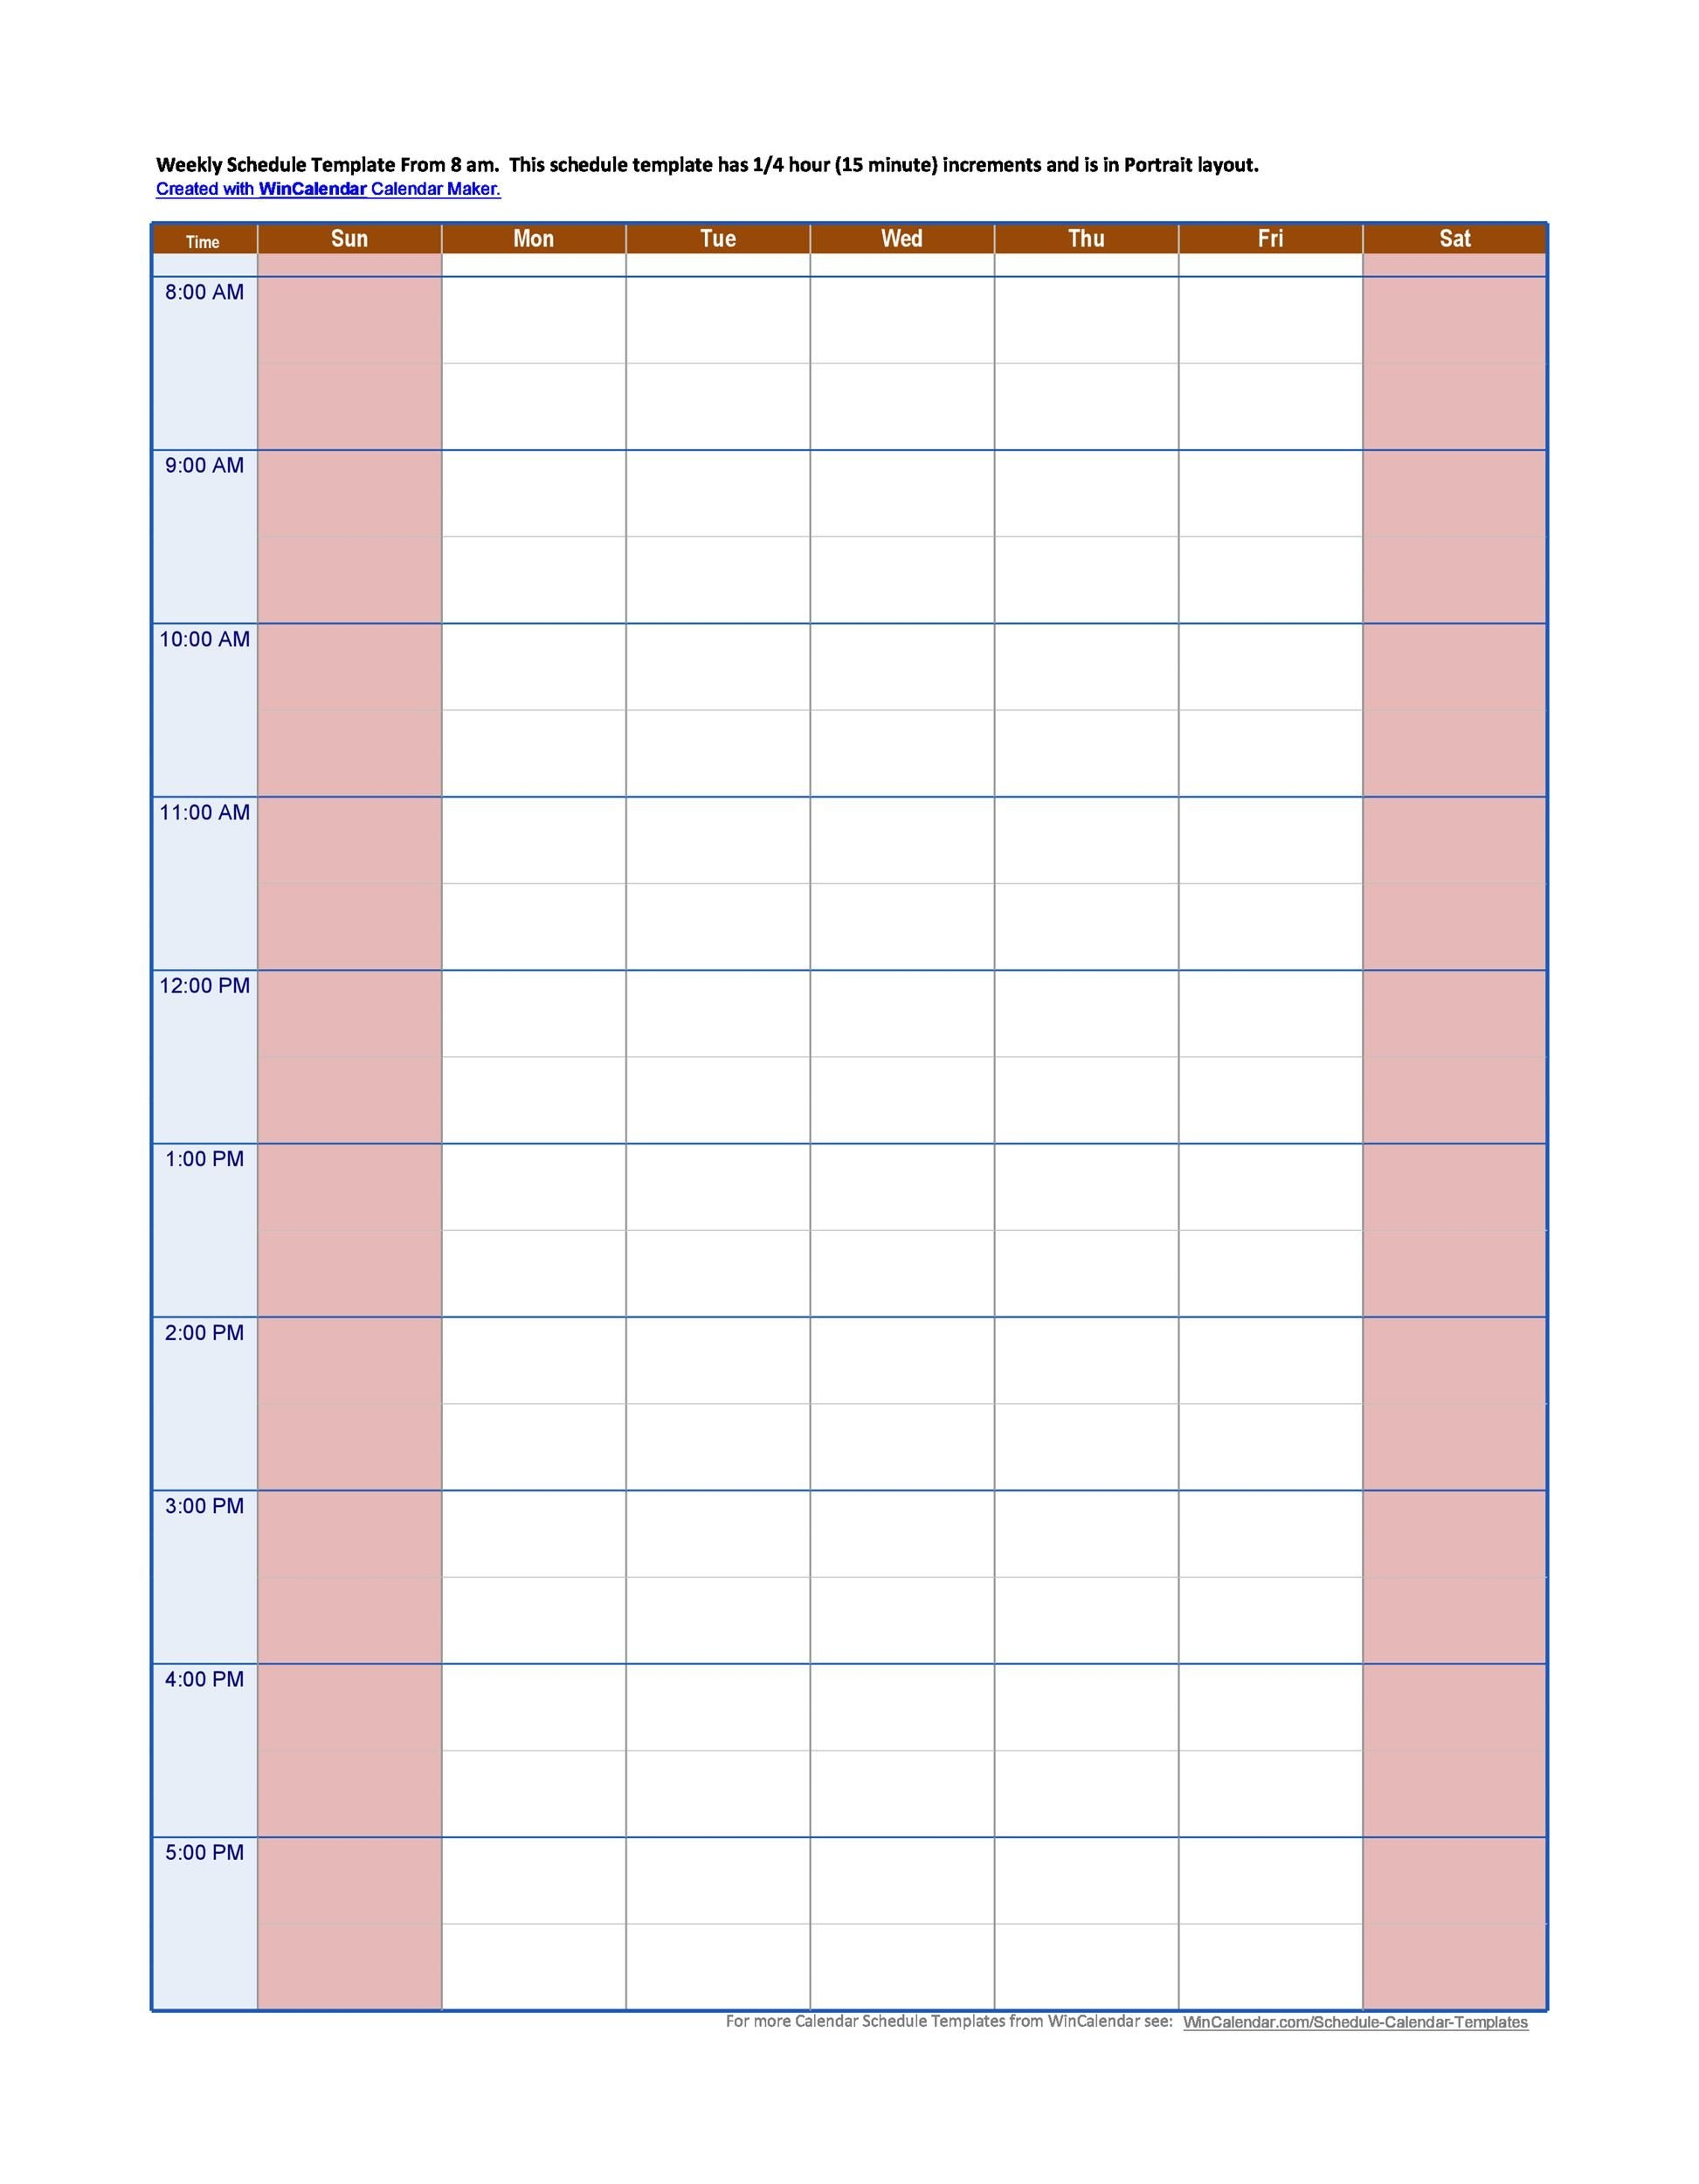 43 Effective Hourly Schedule Templates (Excel & Ms Word) ᐅ